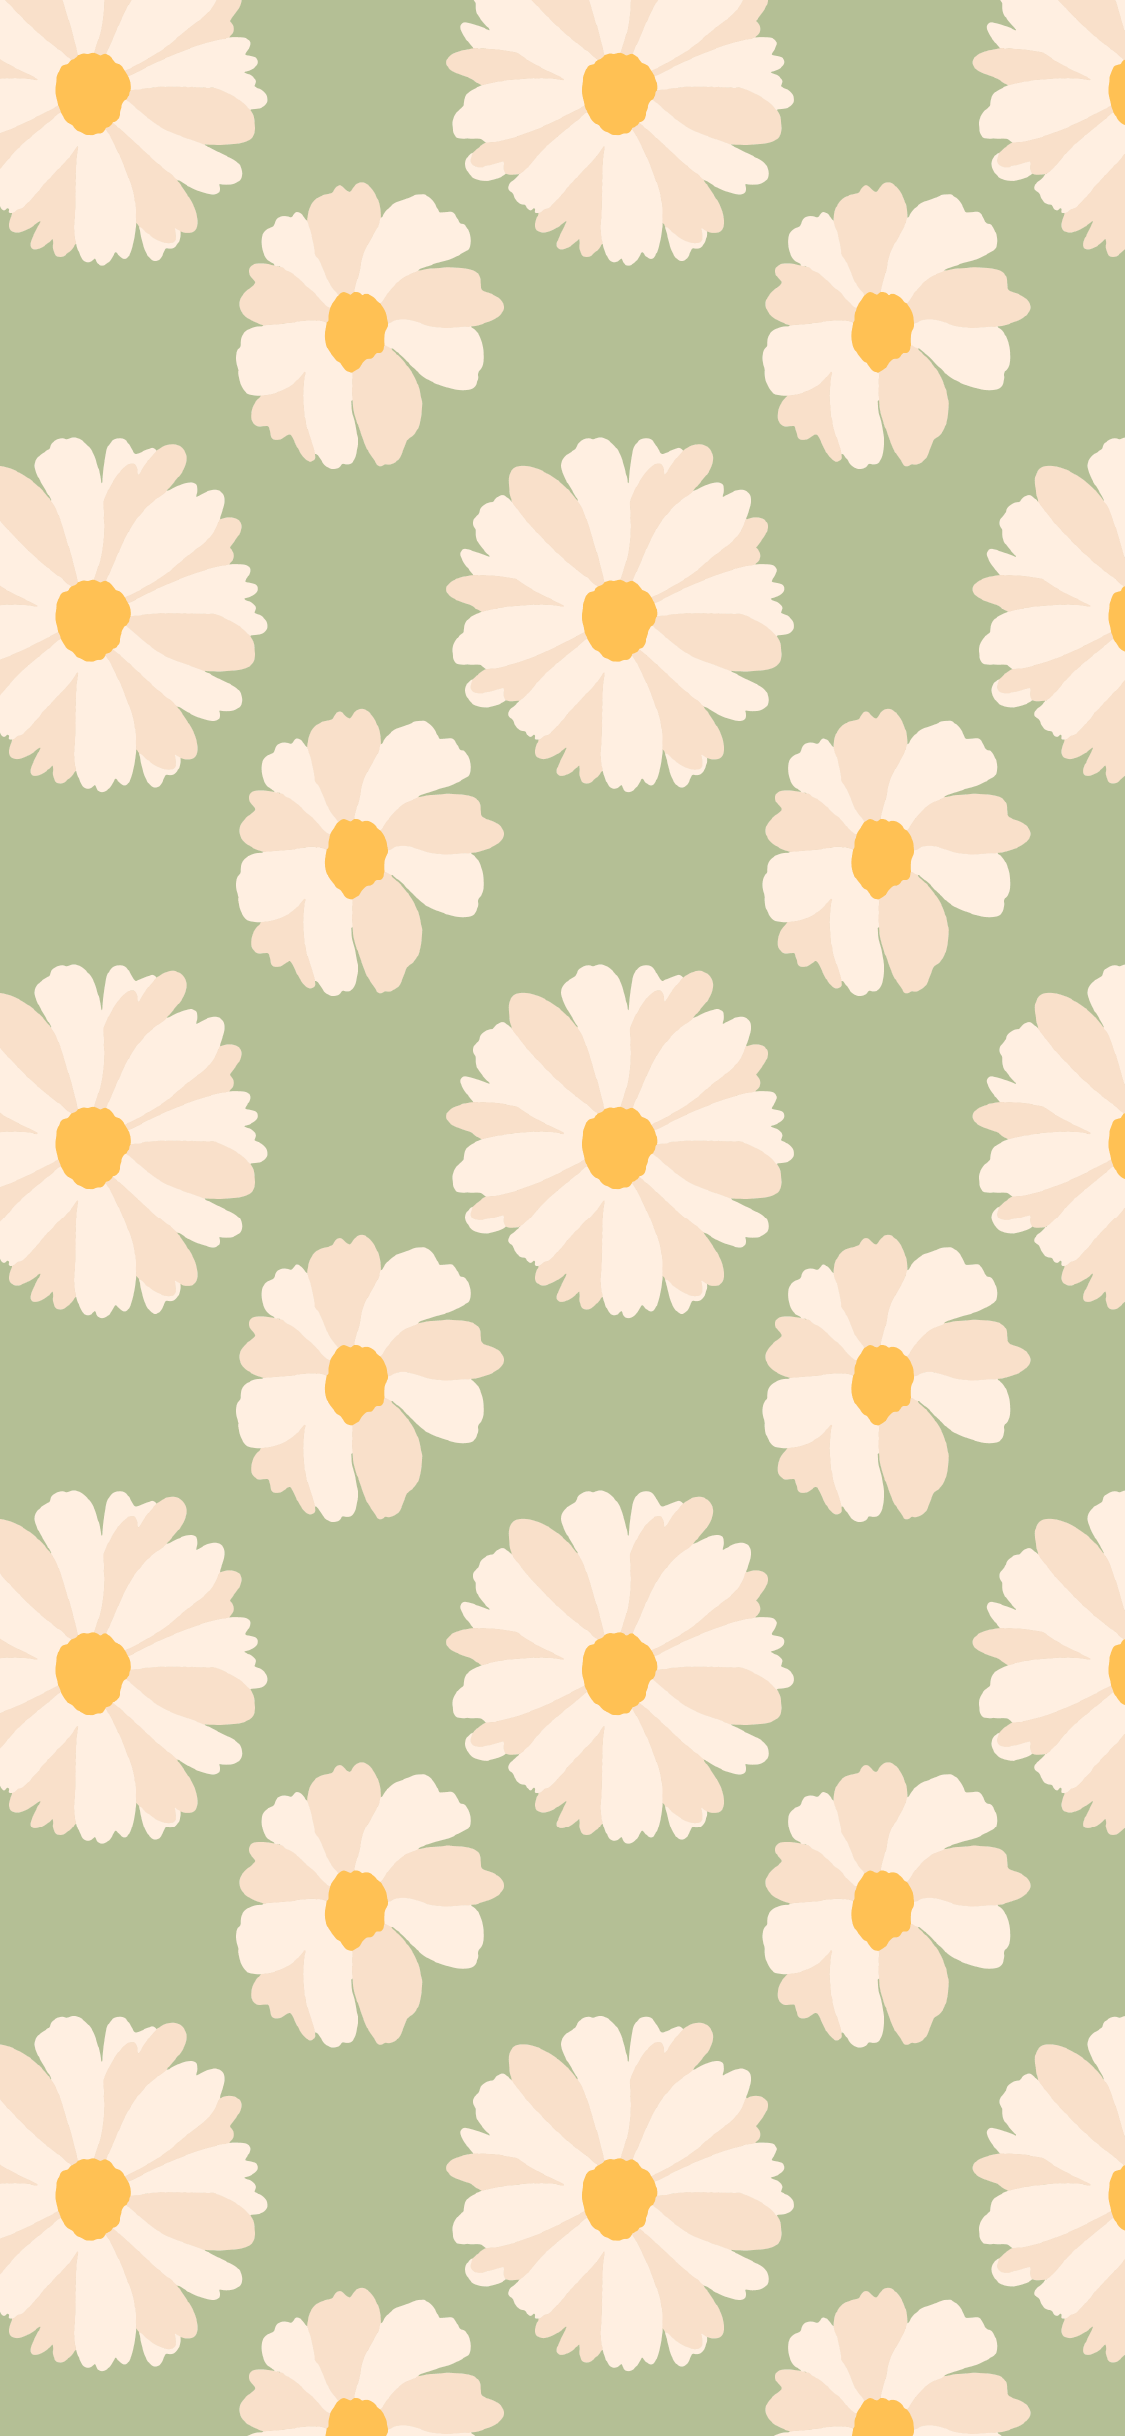 iPhone Wallpapers for Spring 2020 | Ginger and Ivory